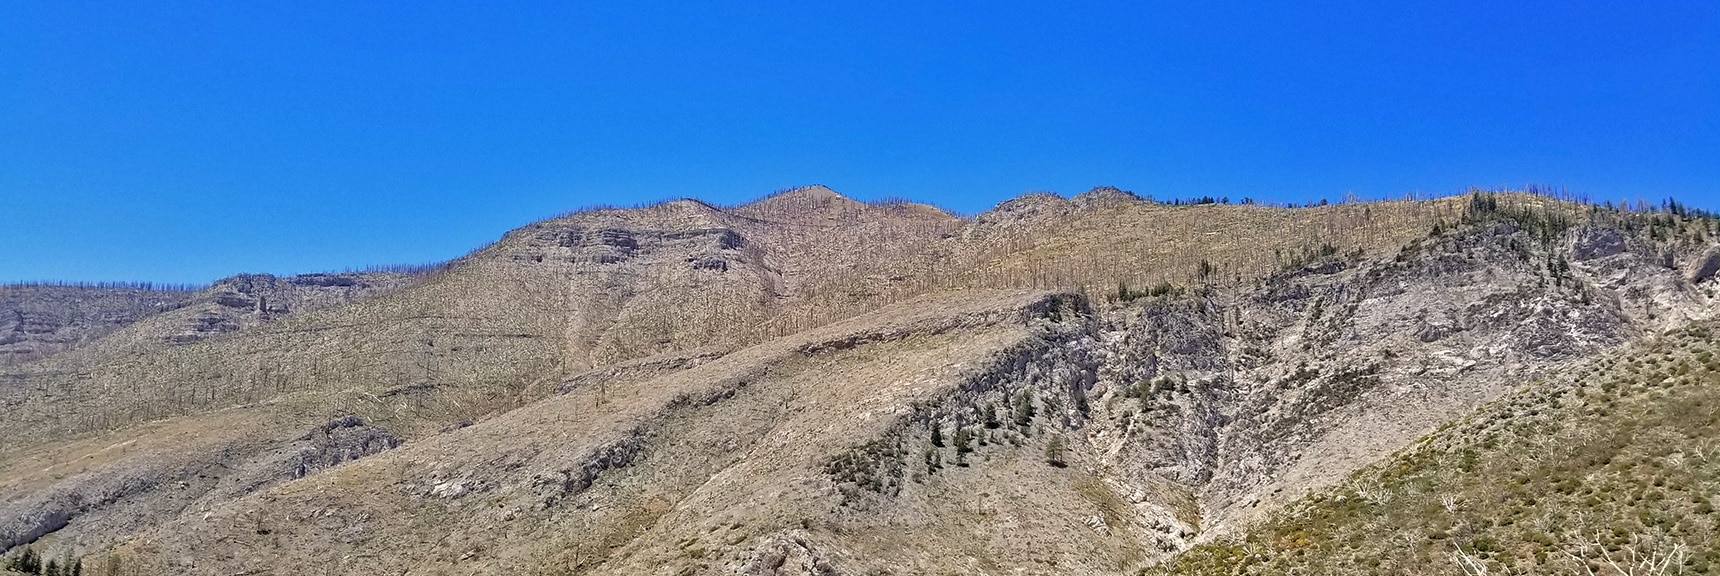 Harris/Griffith Ridge and Sexton Ridge Viewed from 8,300ft East Side of Lovell Canyon | Harris Mountain from Lovell Canyon Nevada